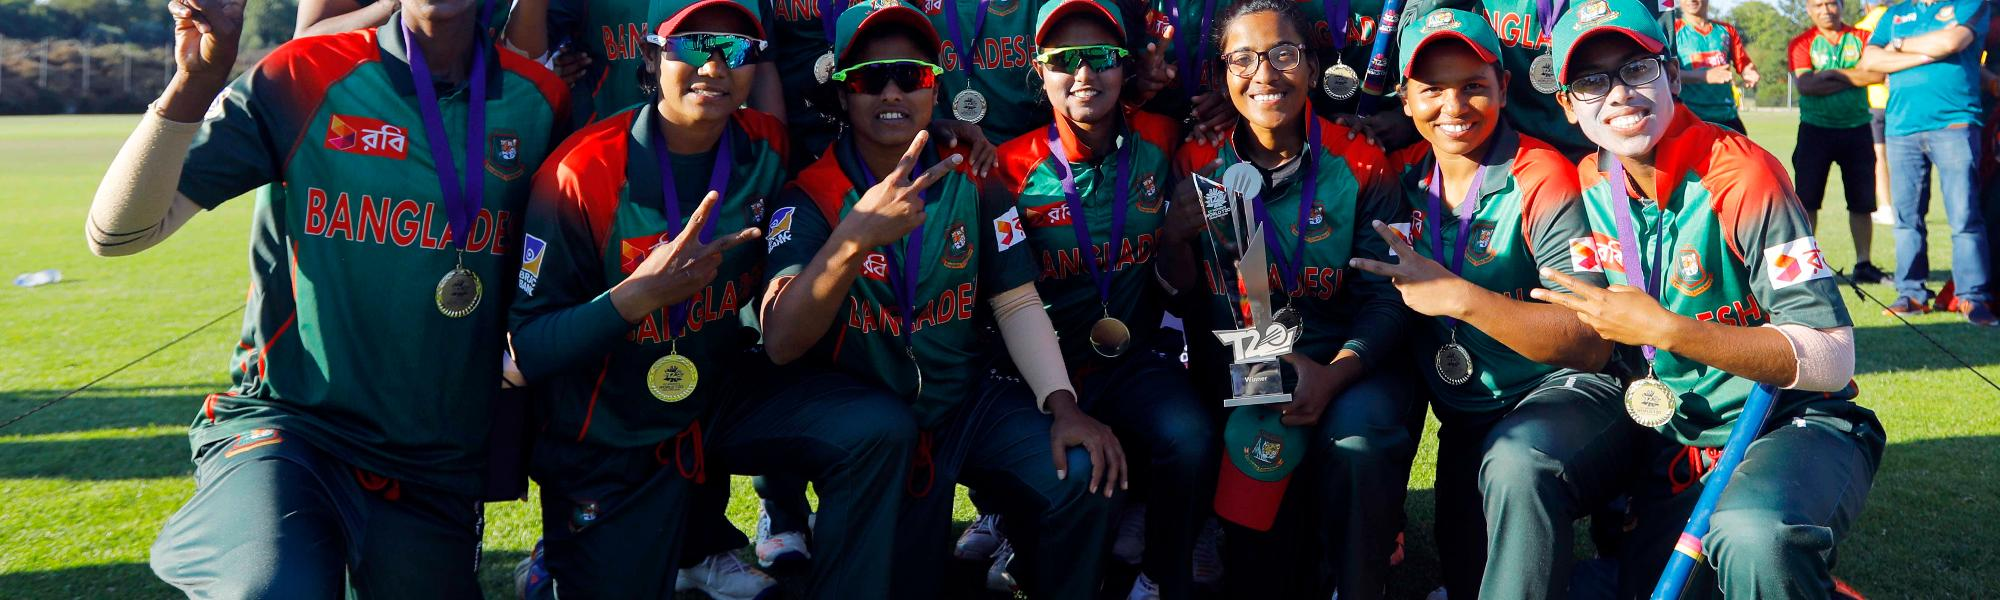 Bangladesh capt Salma Khatun with teammates poses with the trophy as the Bangladesh Team qualifies for T20 World Cup, Final, ICC Women's World Twenty20 Qualifier at Utrecht, Jul 14th 2018.